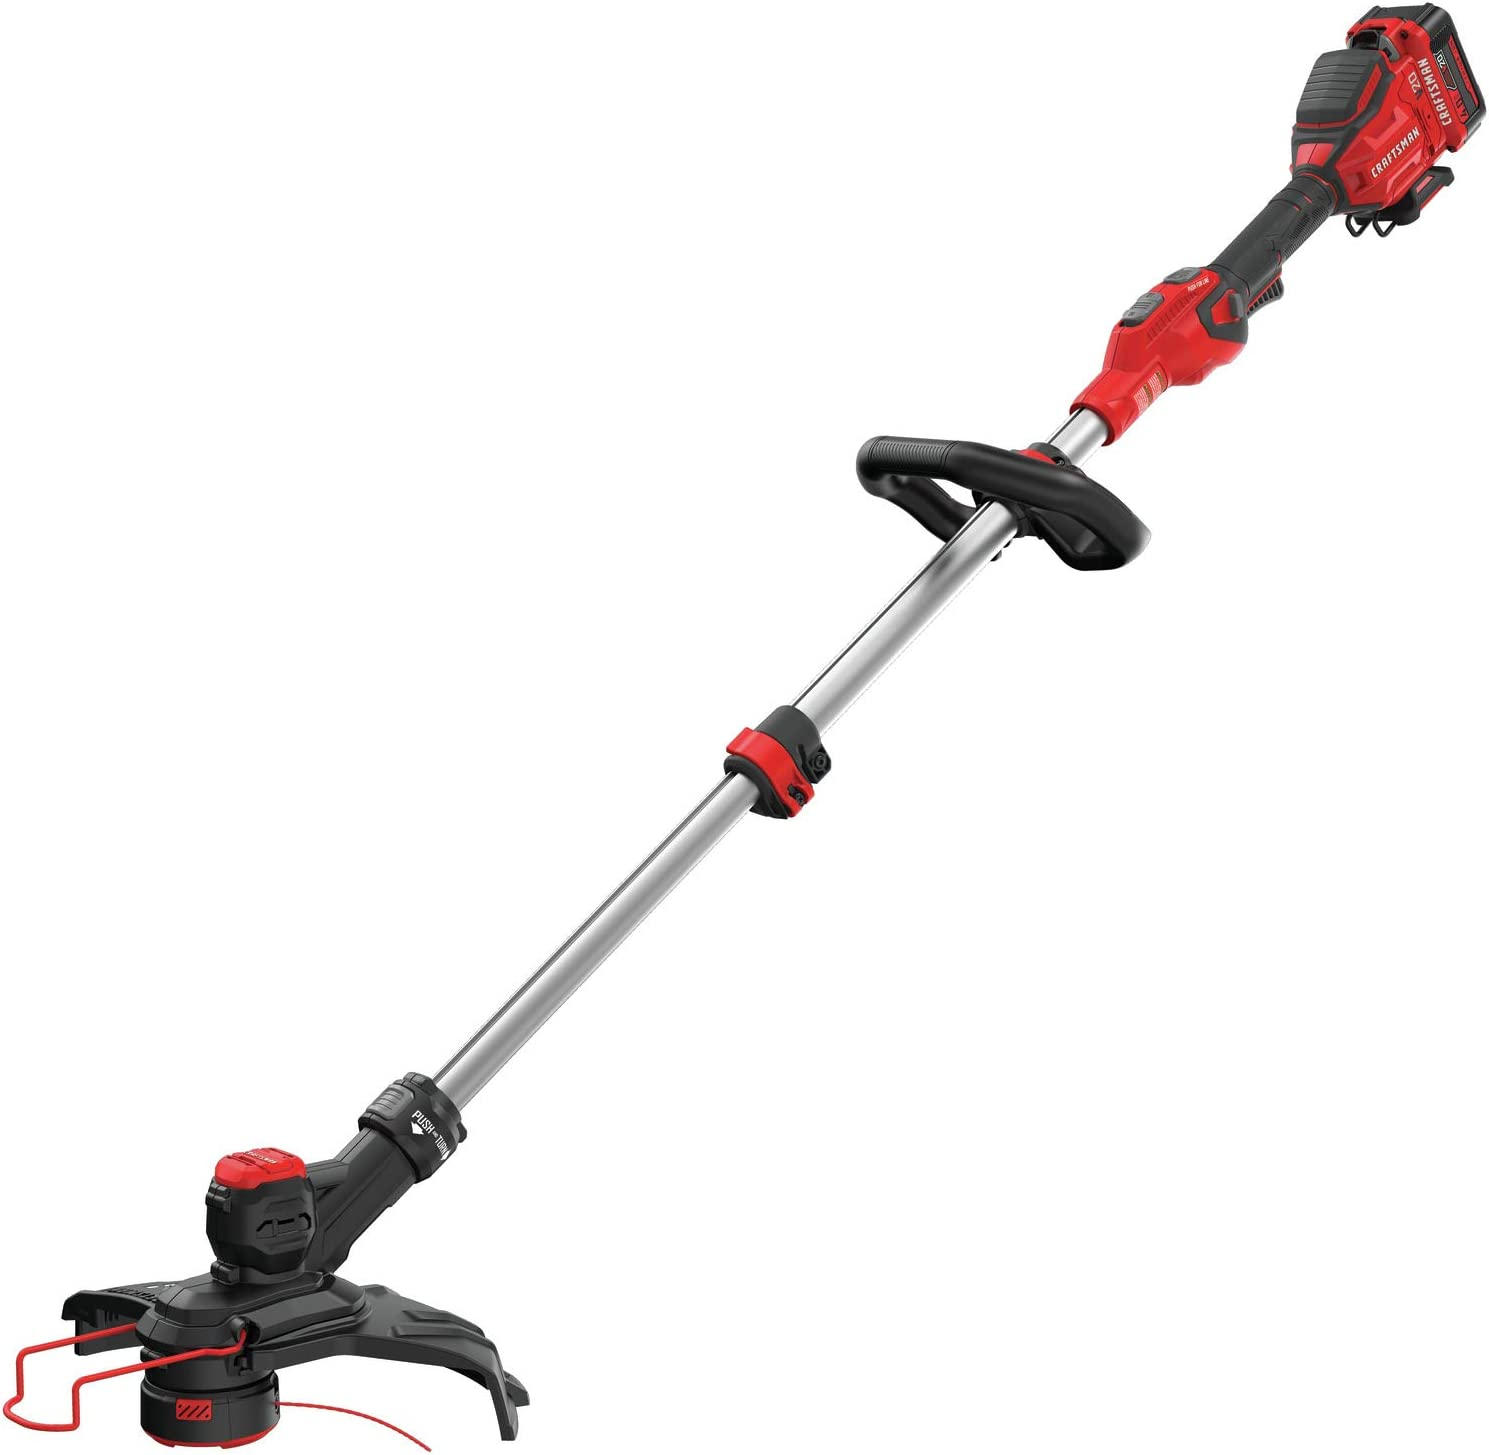 CRAFTSMAN V20 String Trimmer / Edger (CMCST910M1)